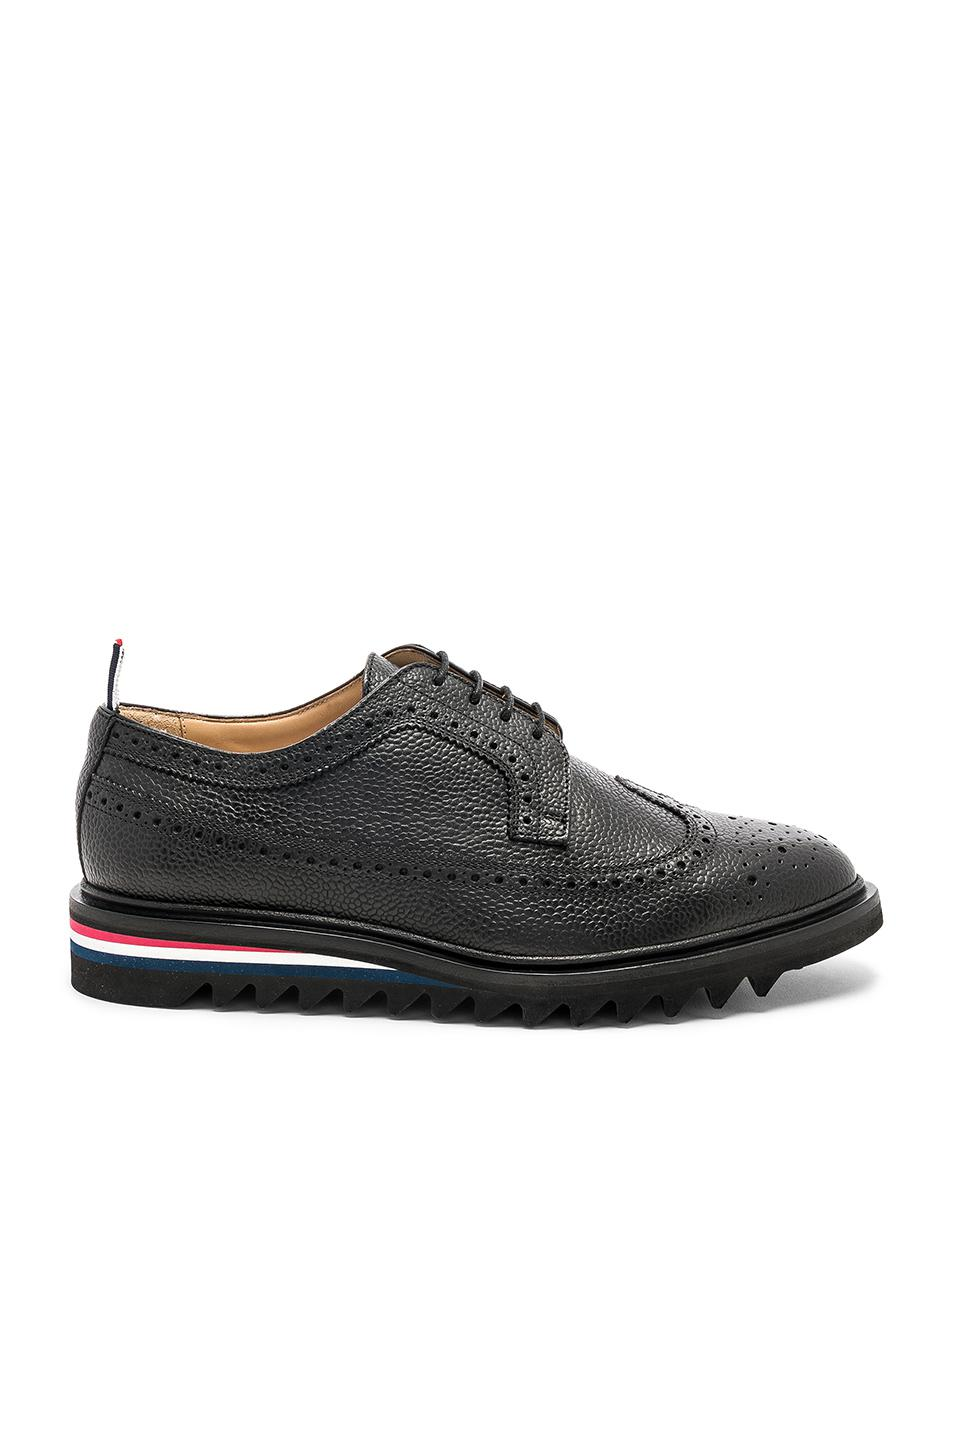 Thom Browne Pebble Grain Classic Longwing Brogue with Threaded Rubber Sole in .